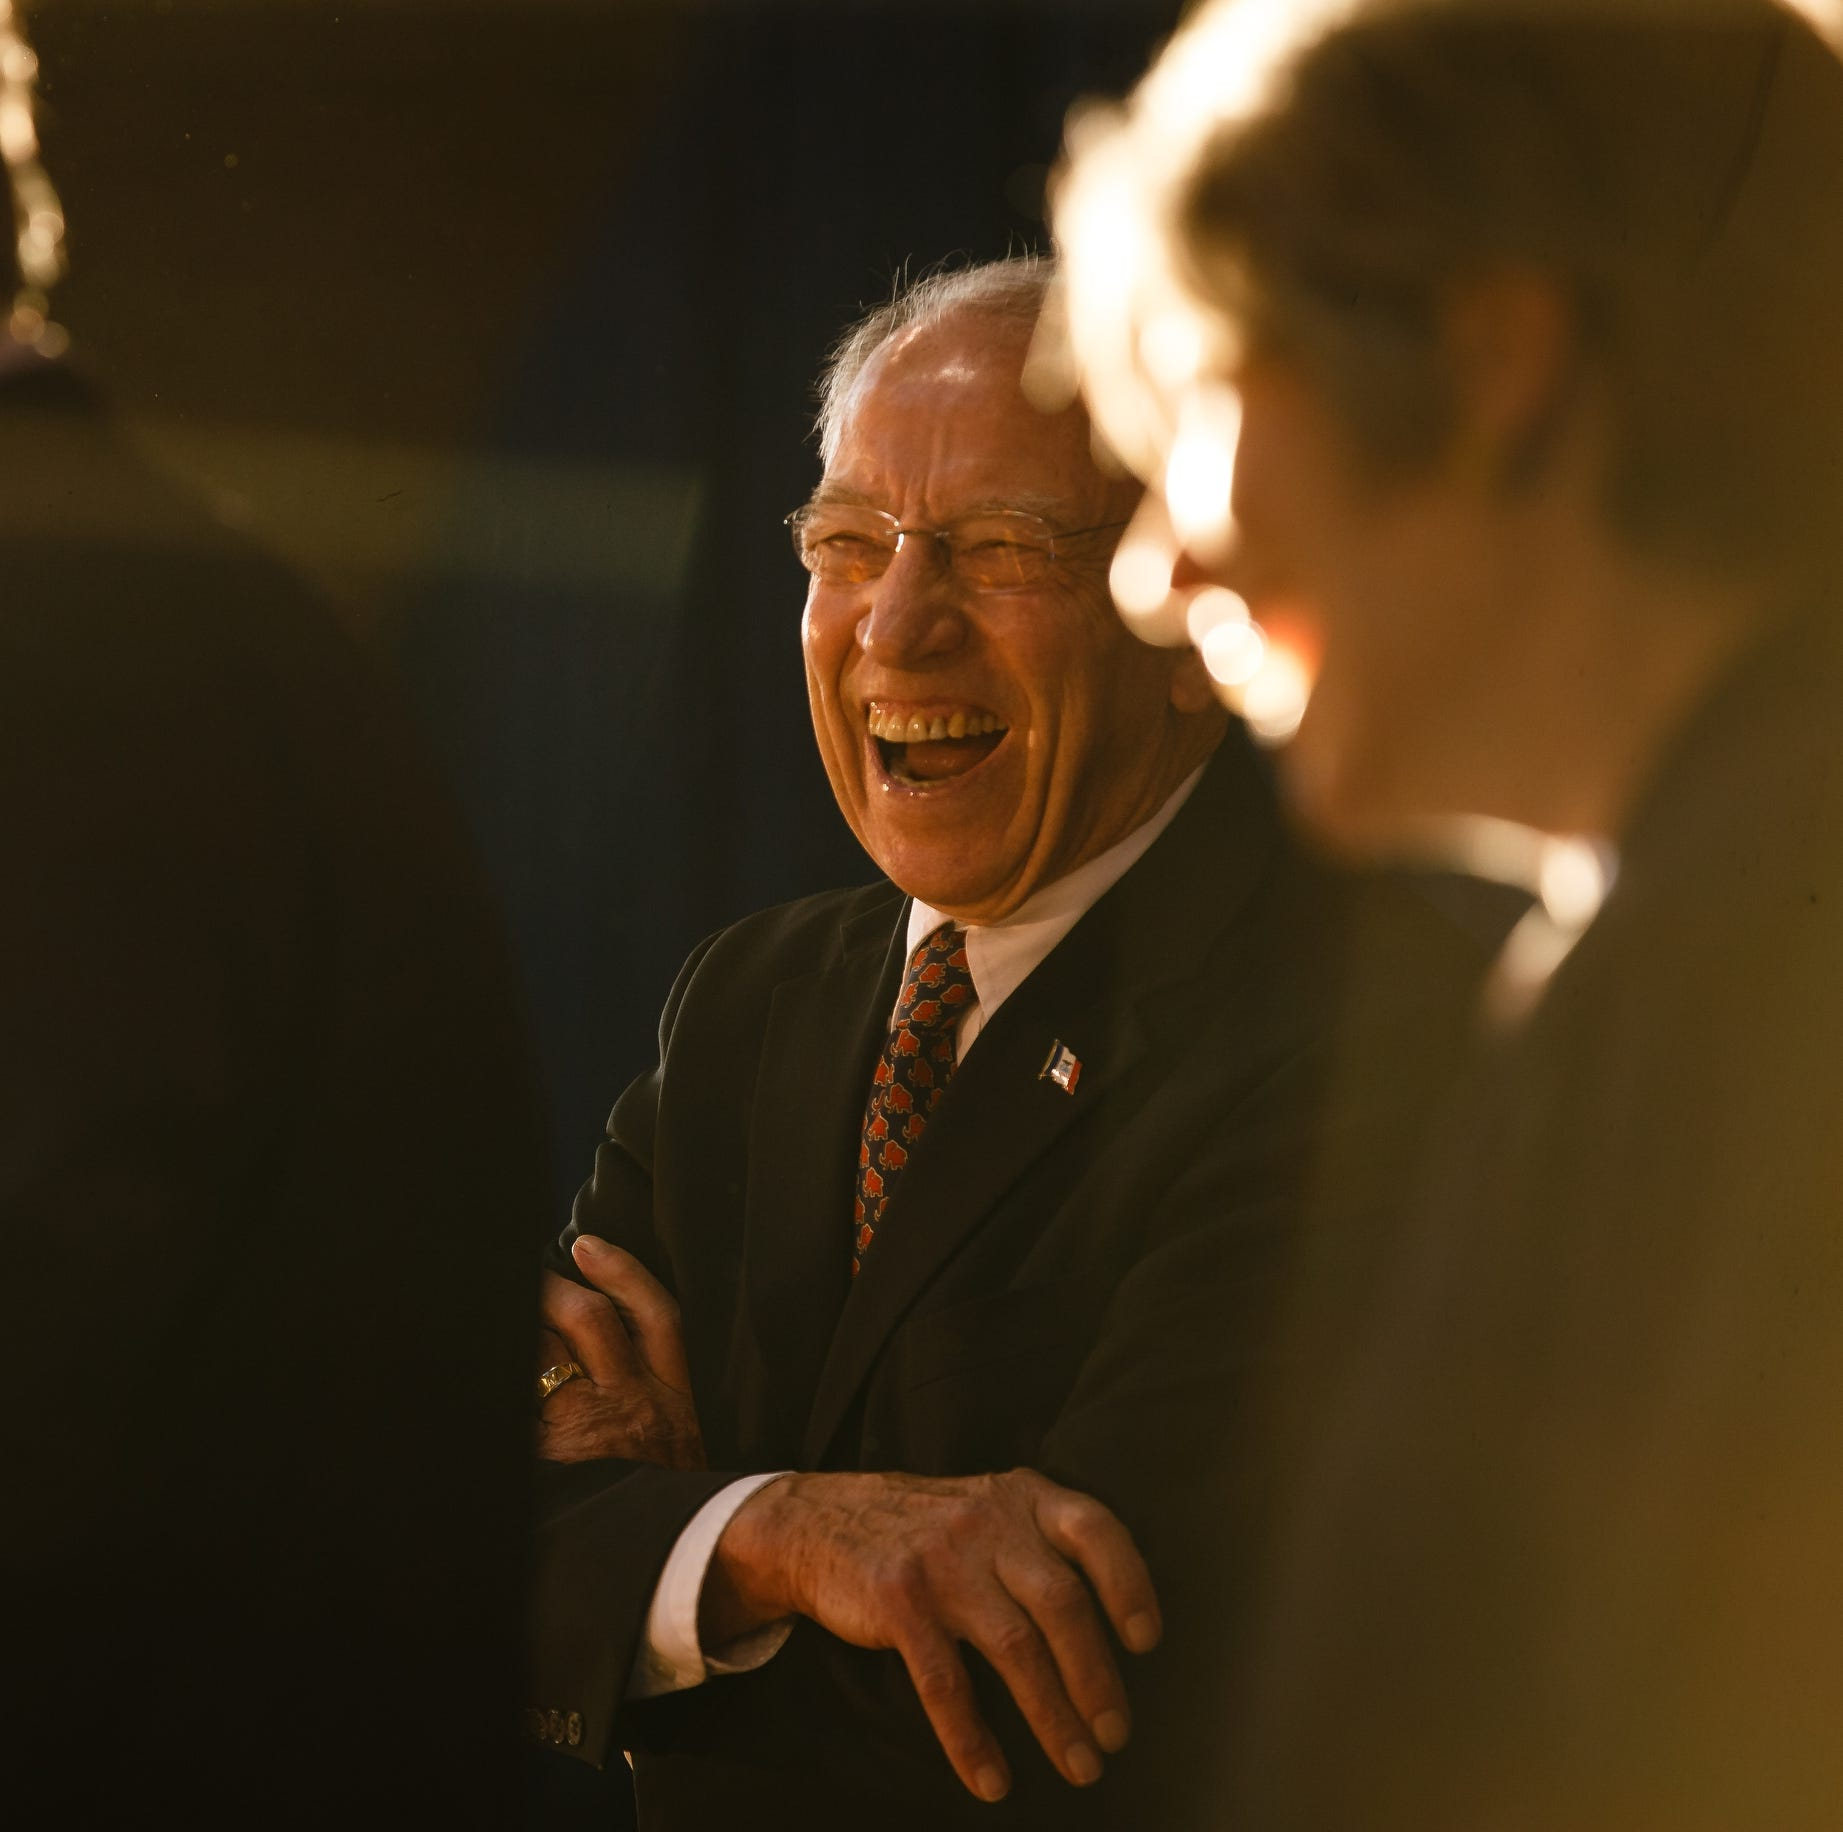 Sen. Chuck Grassley laughs at a joke as Rep. David Young speaks during Gov. Reynolds Harvest Festival at the Knapp Animal Learning Center on Saturday, Oct. 13, 2018, in Des Moines.